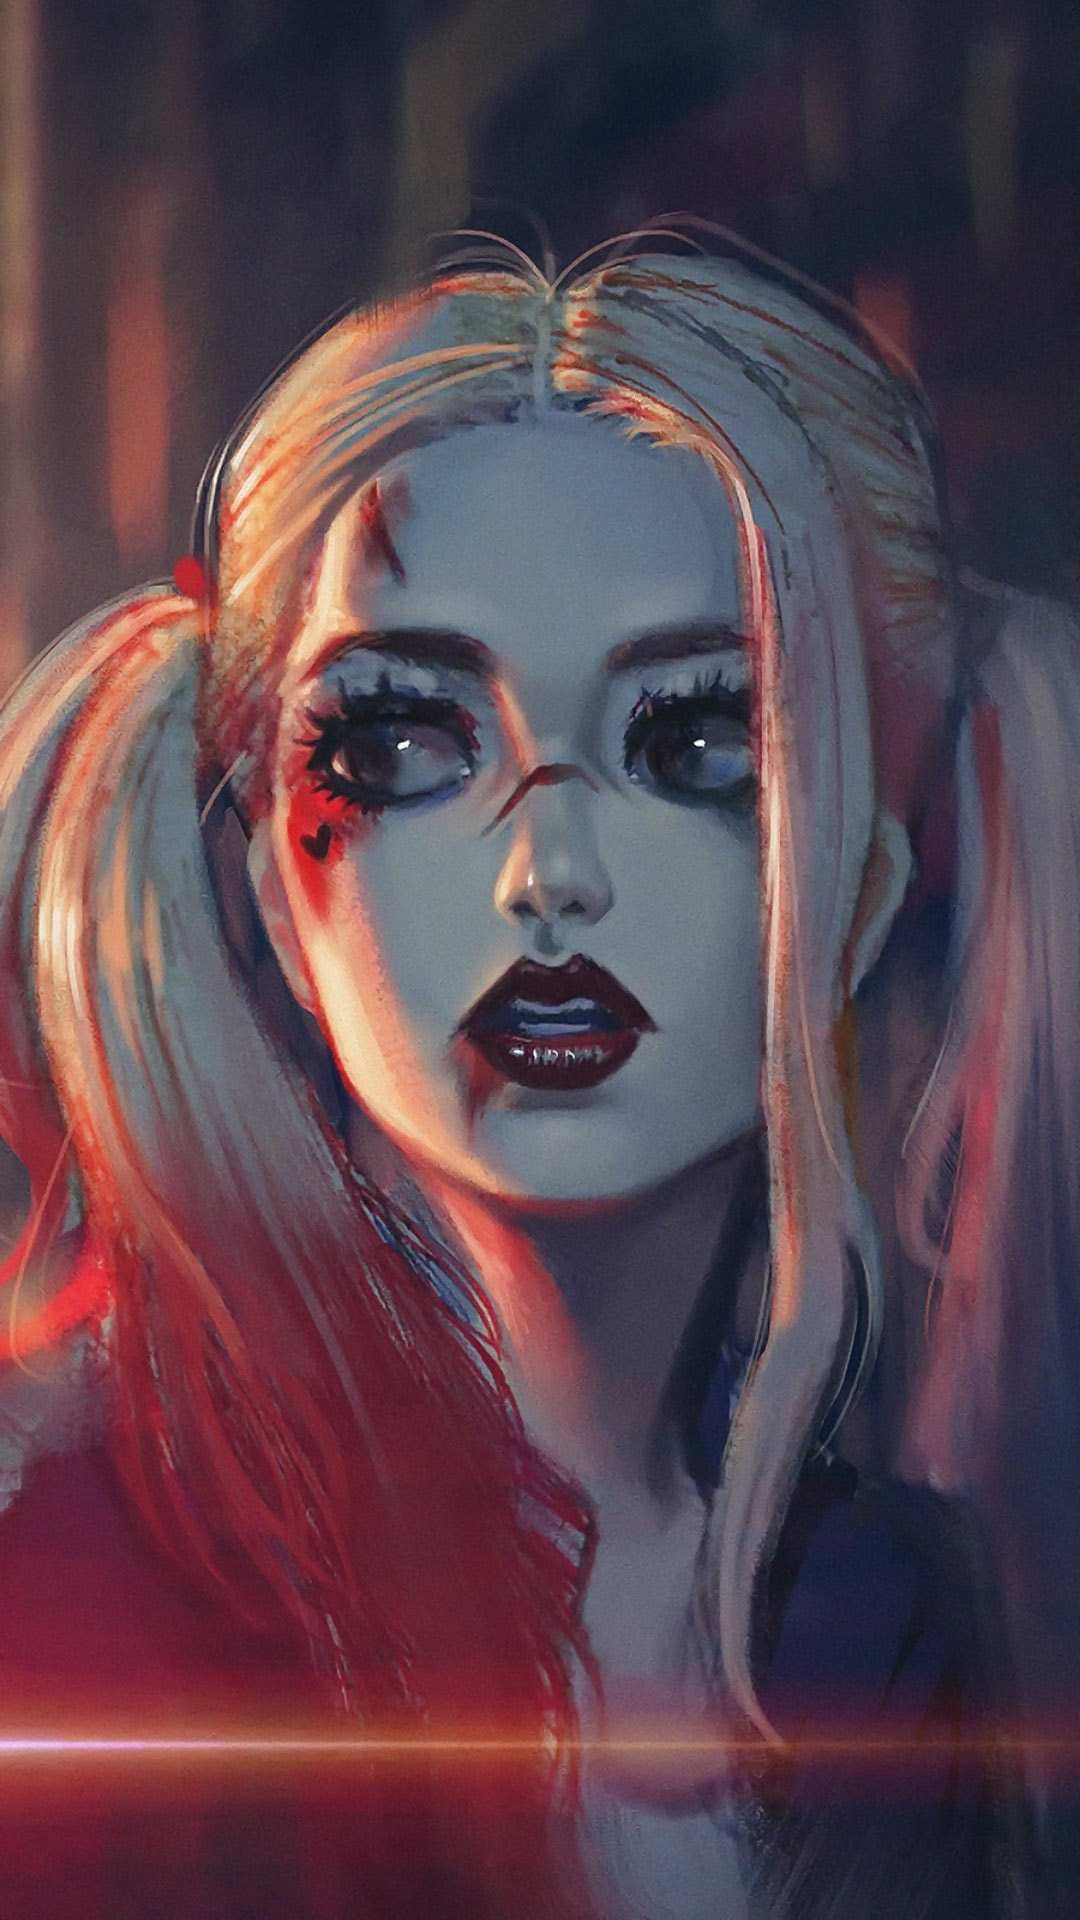 Suicide Squad Harley Quinn iPhone Wallpaper